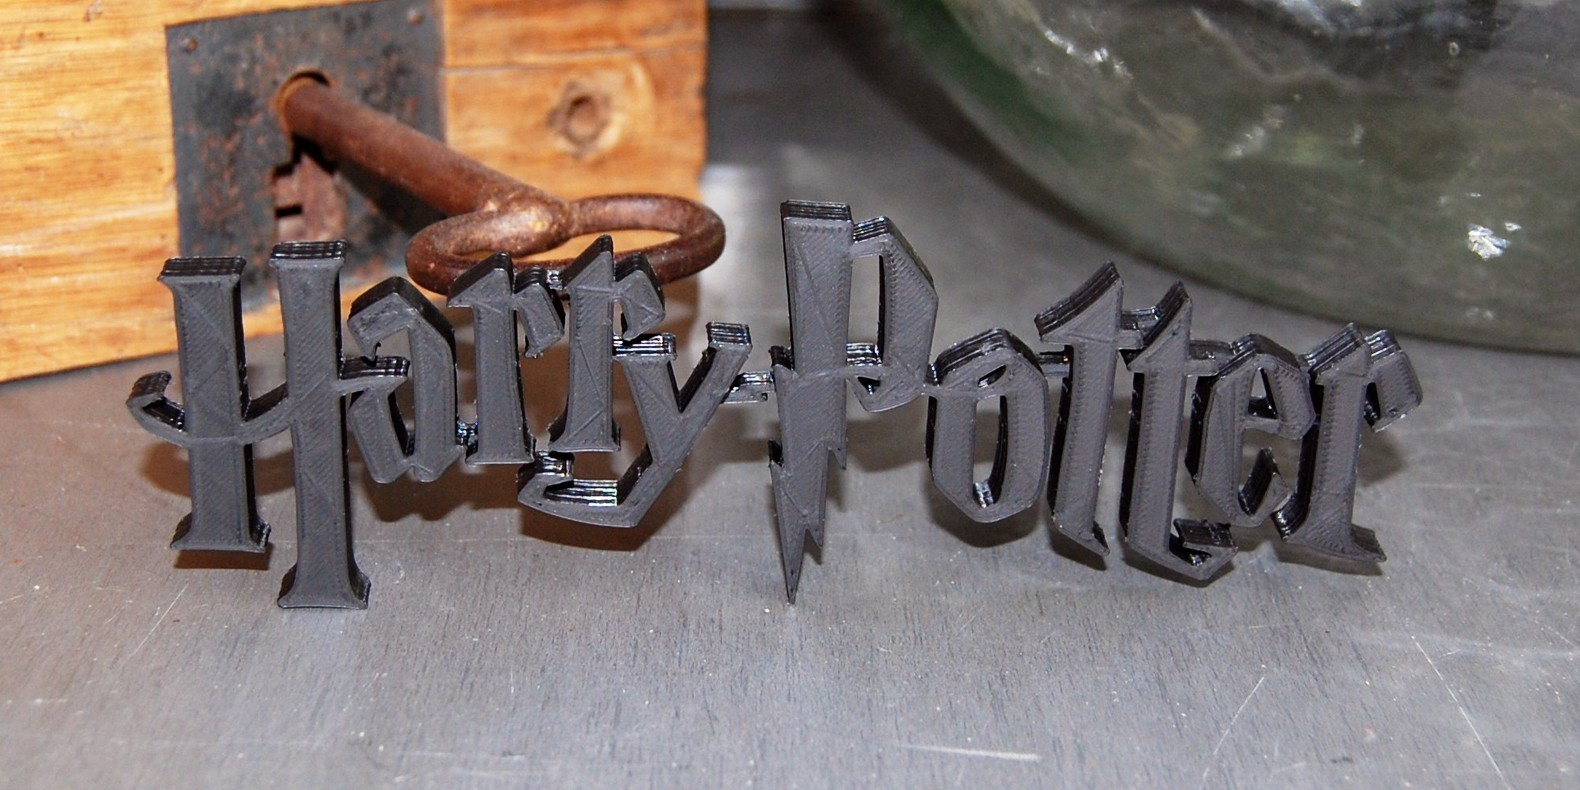 Here is a selection of the best Harry Potter 3D models to make with a 3D printer